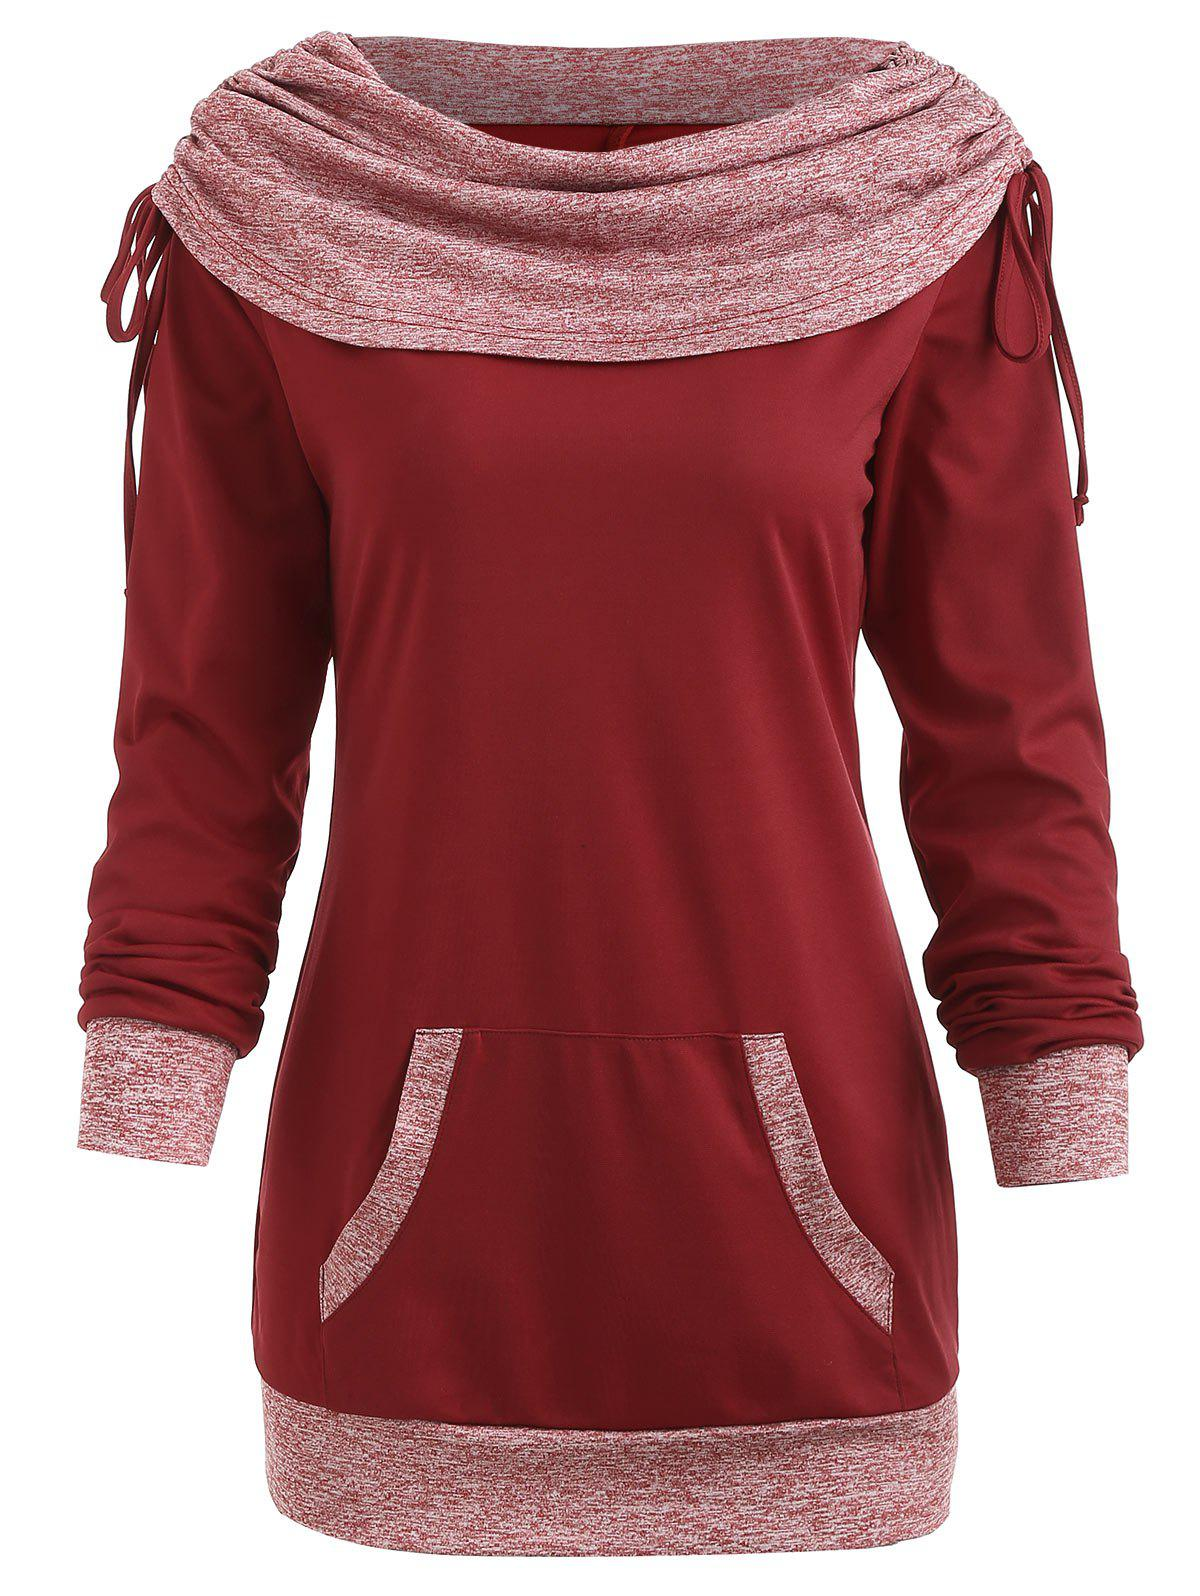 Drawstring Ruched Contrast Sweatshirt - RED WINE M